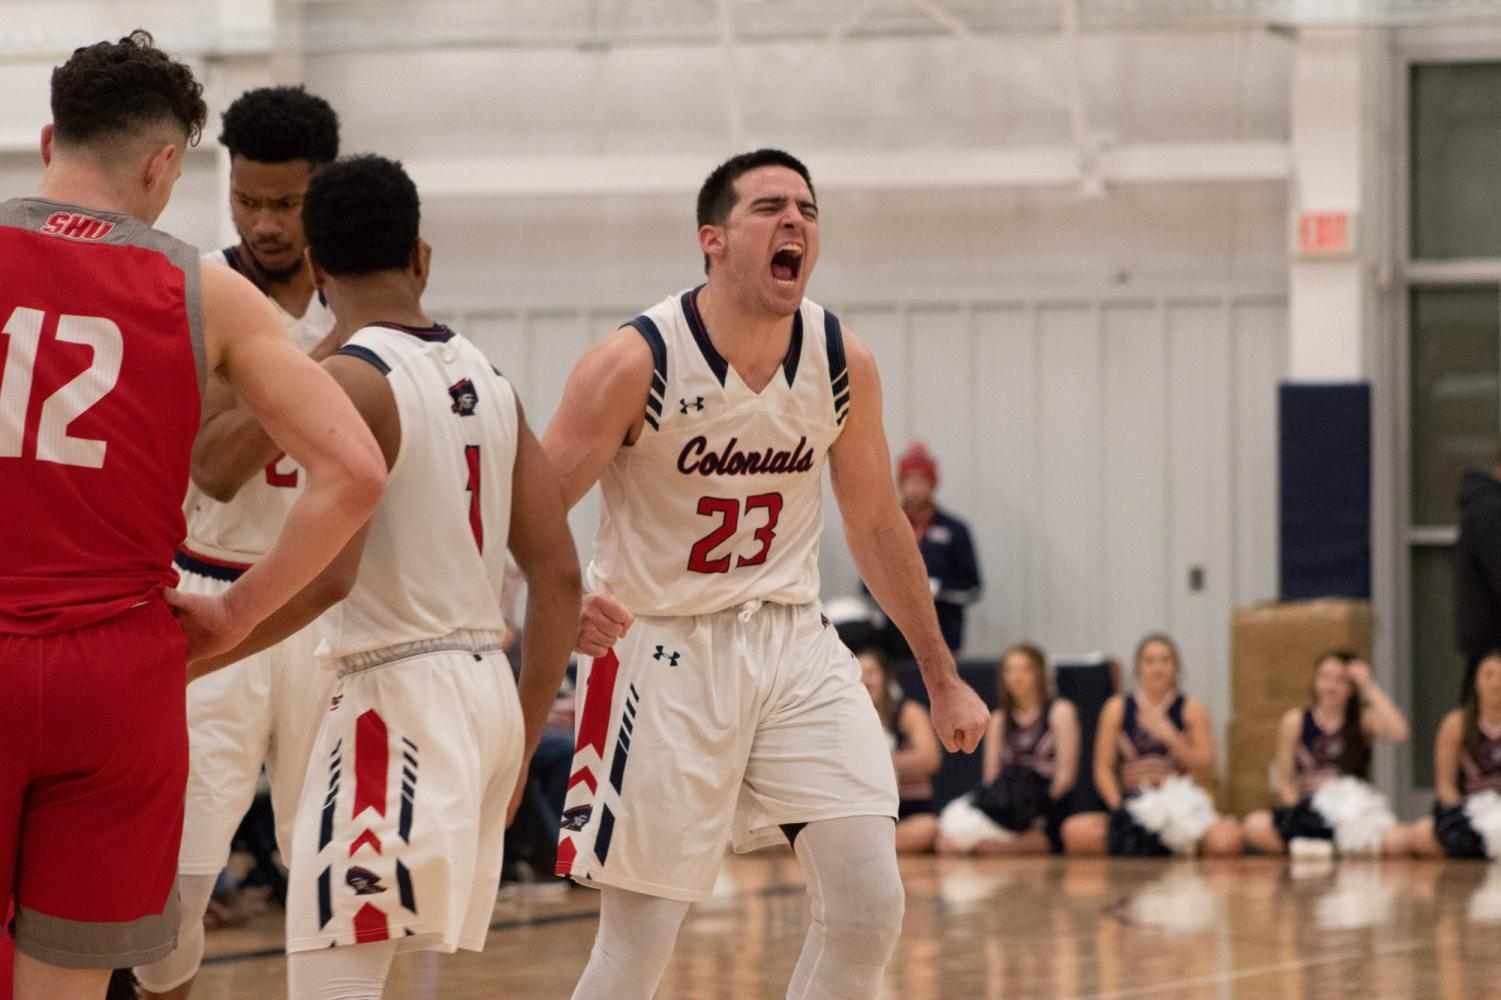 MOON TOWNSHIP — Matty McConnell celebrates during the team's victory against Sacred Heart on Thursday Jan. 24, 2019 (Samuel Anthony/RMU Sentry Media). McConnell had a season-high 19 points in the victory. Photo credit: Samuel Anthony